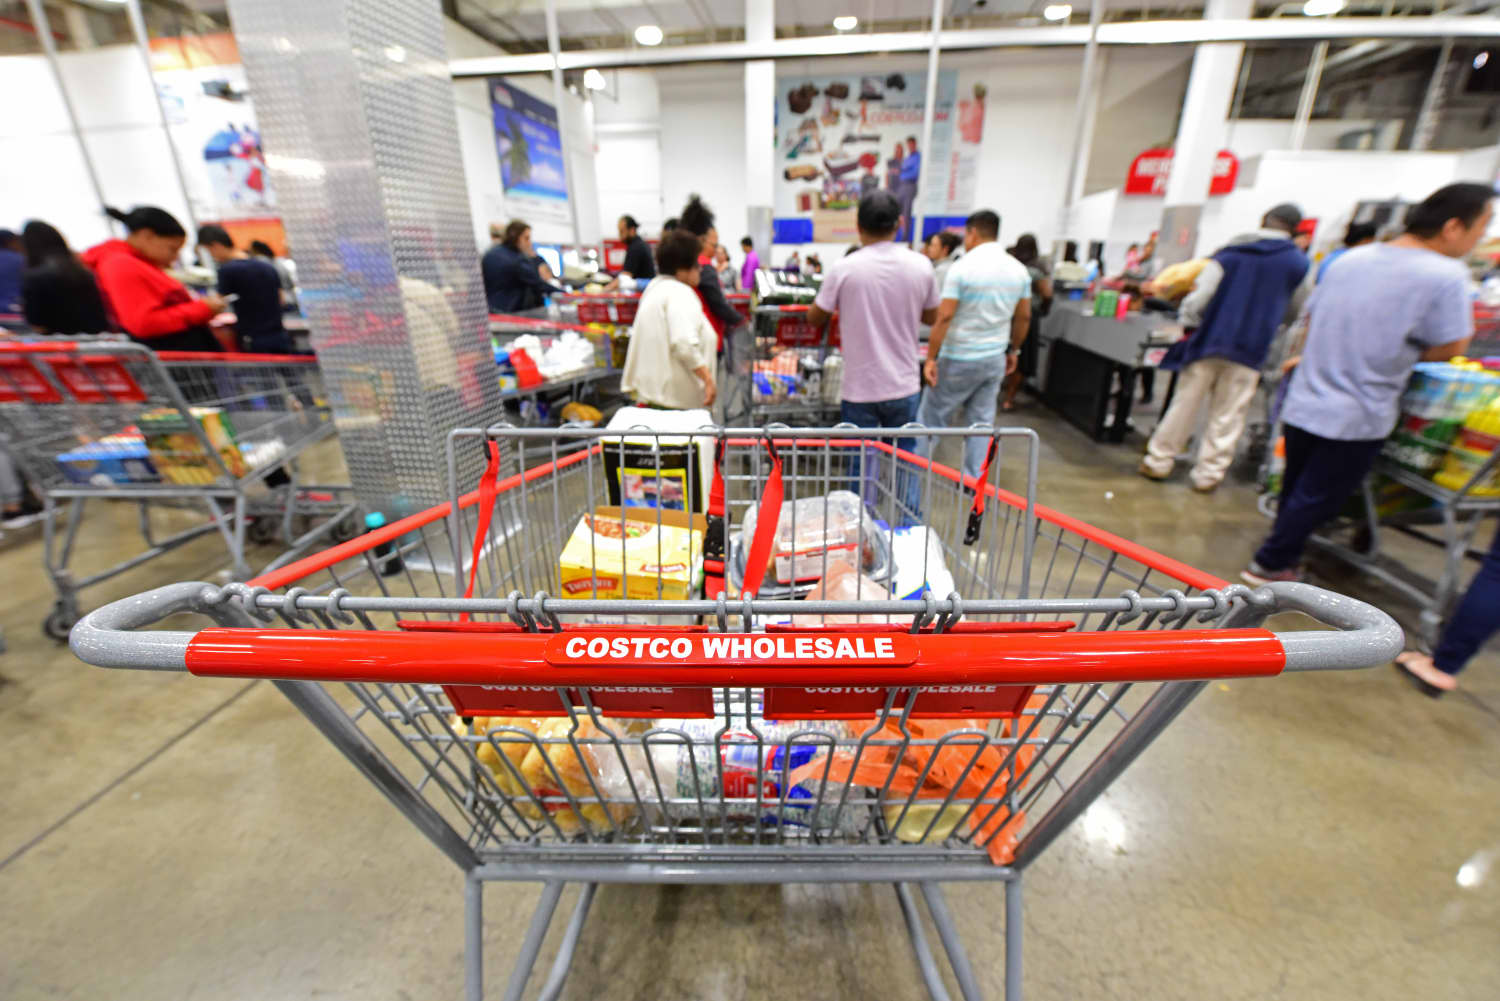 Worried About Food Safety? Why Costco Does It Best.